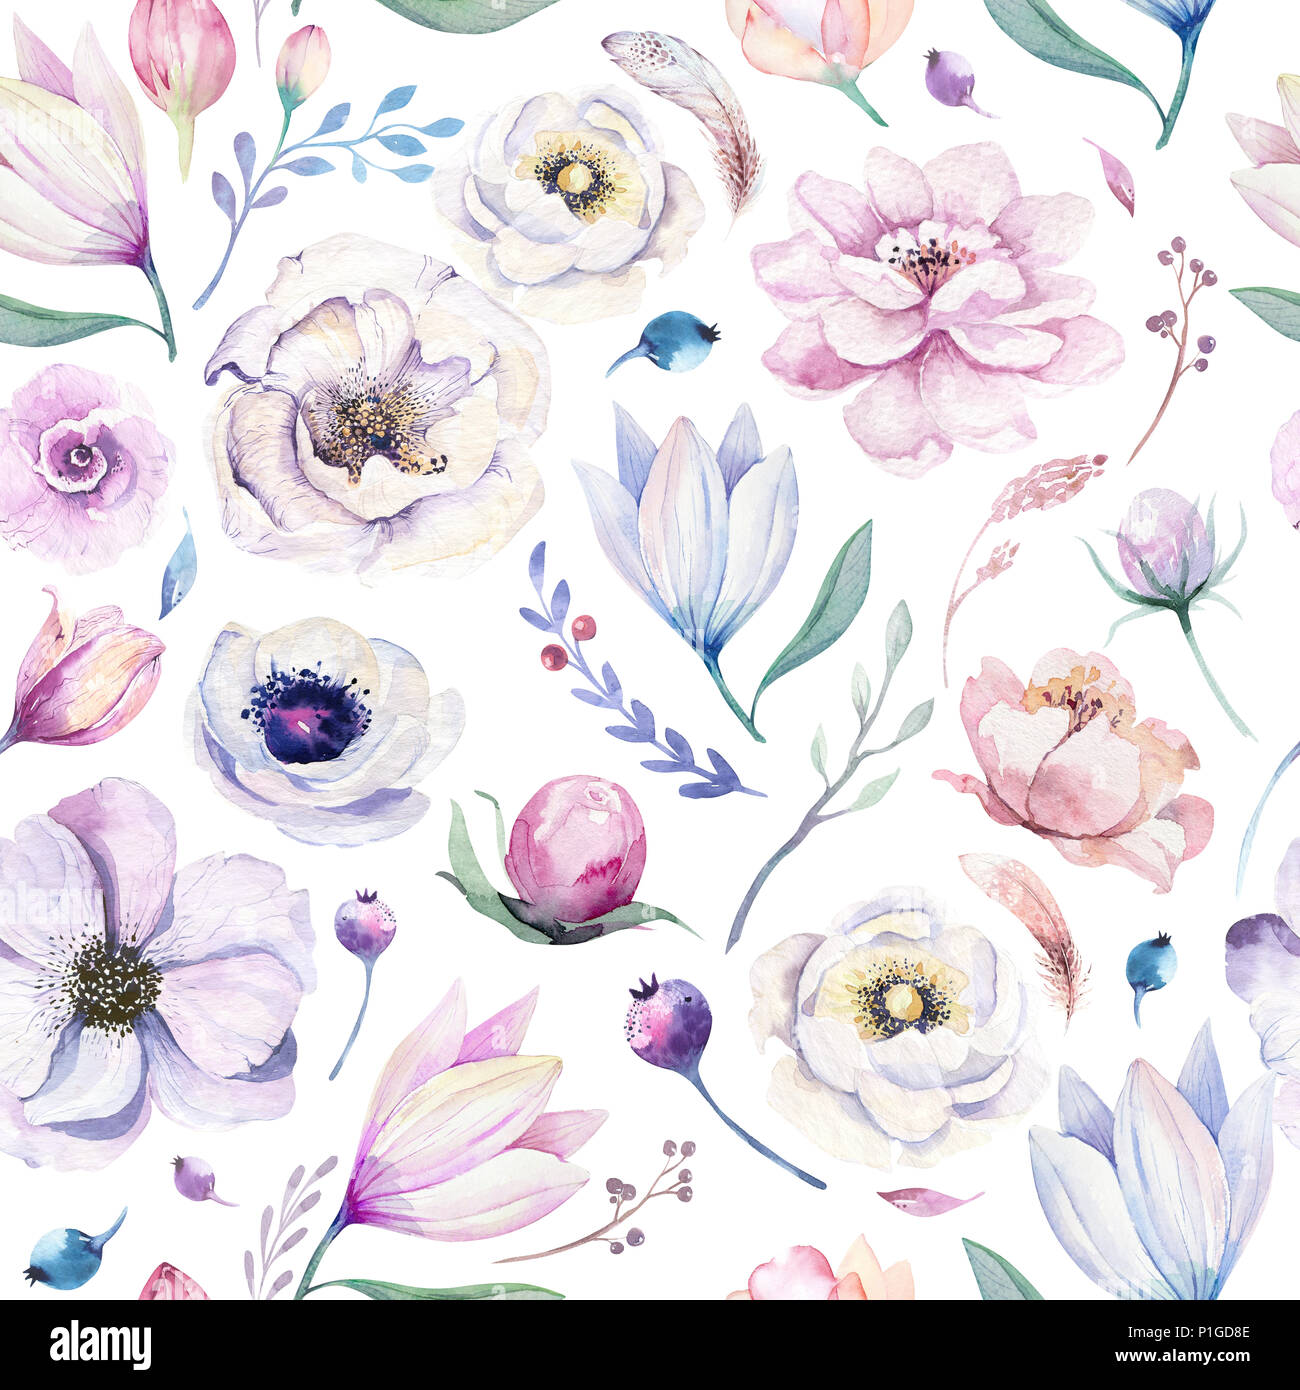 Seamless Spring Lilic Watercolor Floral Pattern On A White